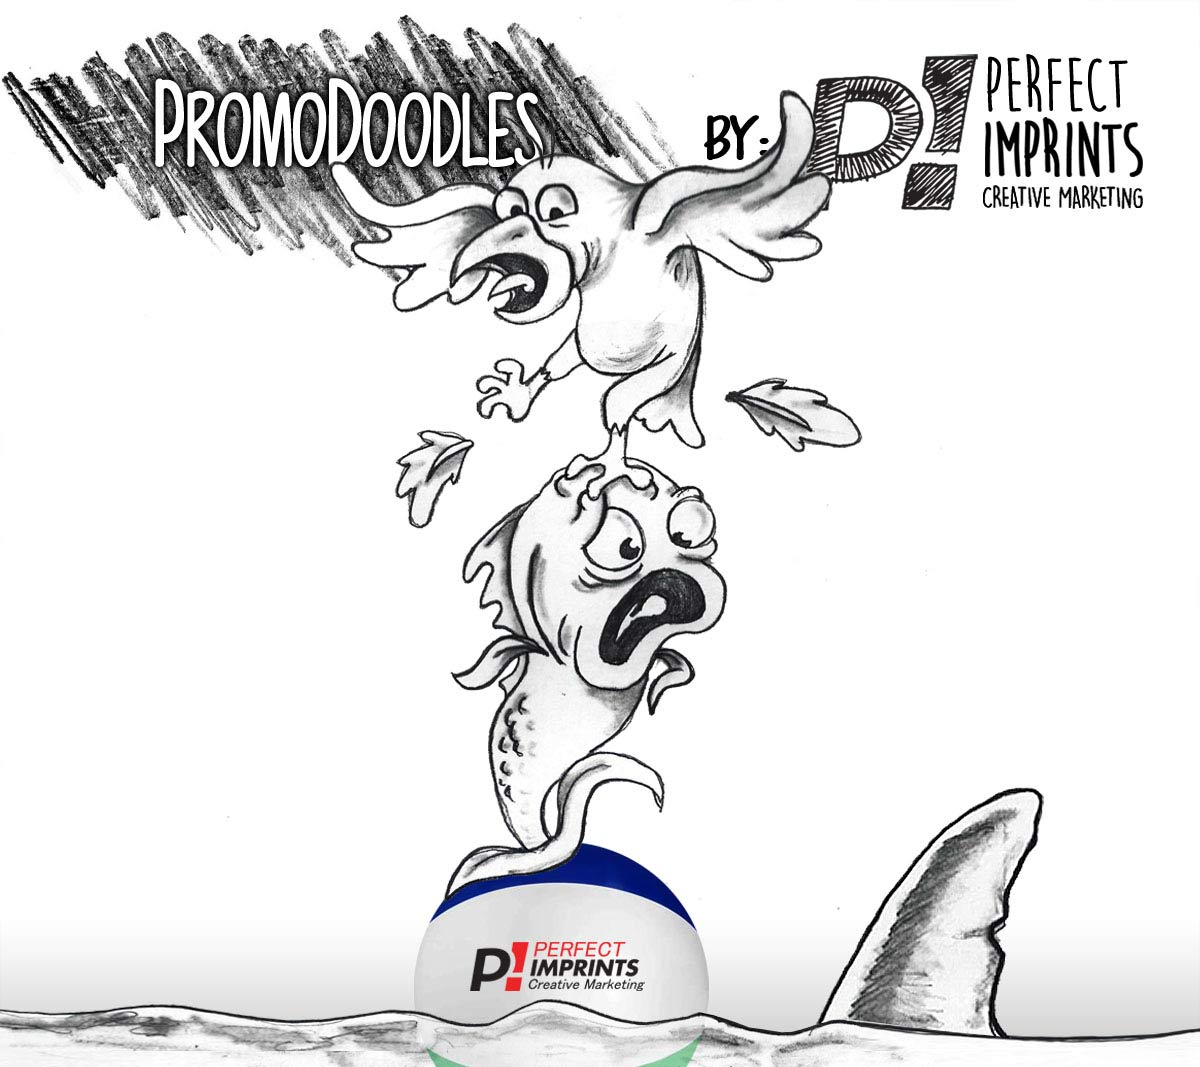 PromoDoodles Beach Ball Shark Attack